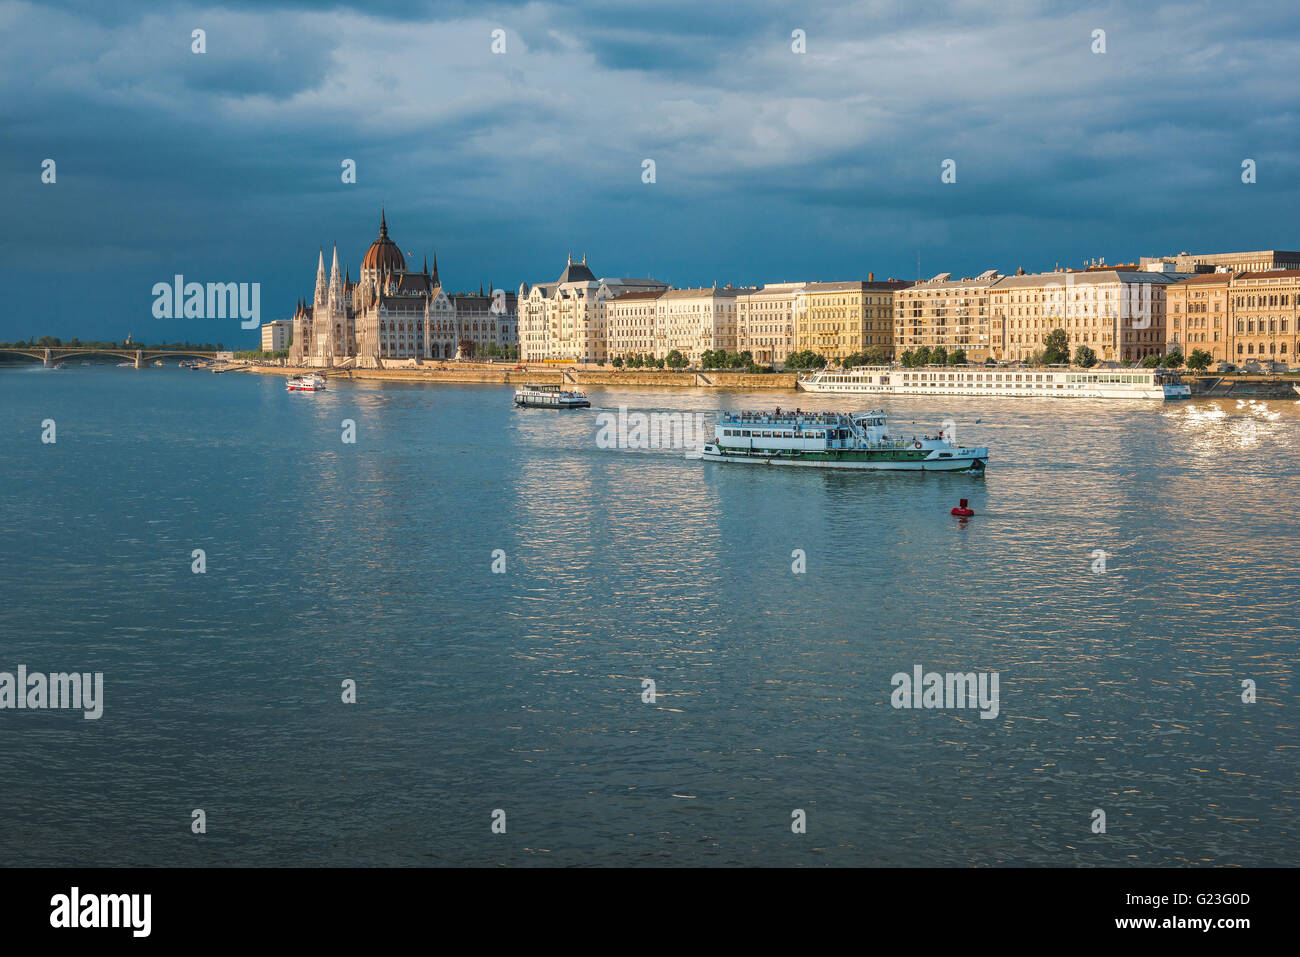 The south embankment (the Pest side) of the Danube River in Budapest illuminated at sunset, with the Hungarian Parliament - Stock Image